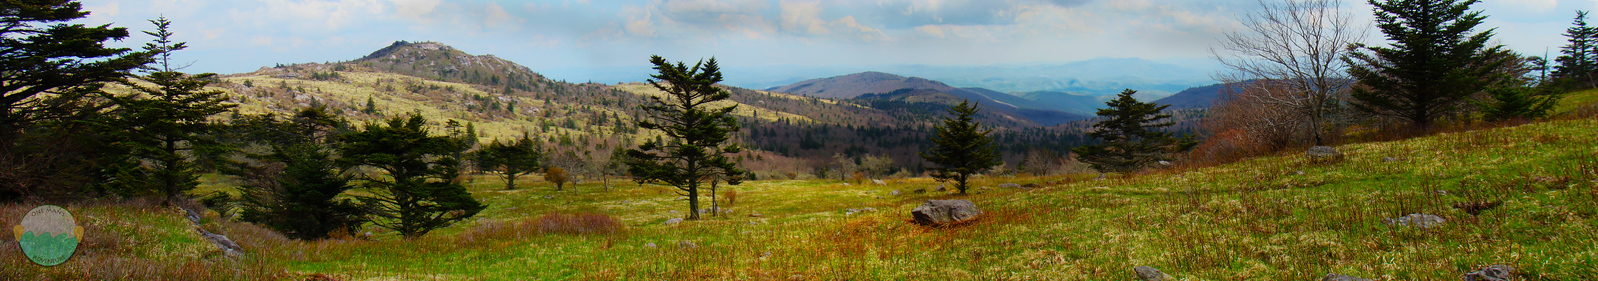 Grayson<br /> A view of the Grayson Highlands.